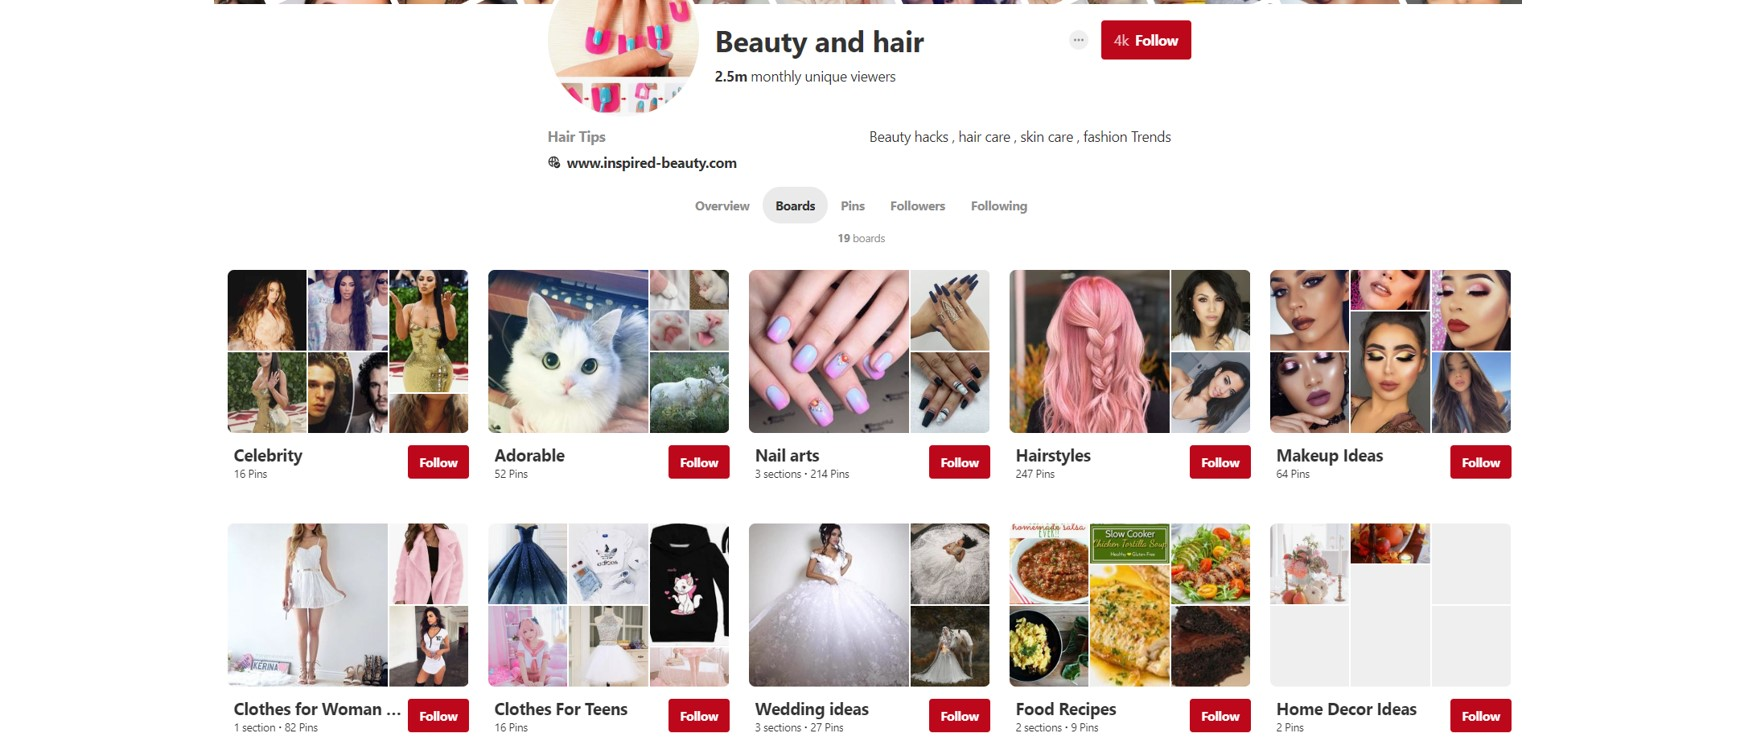 Pinterest beauty tips and tricks board